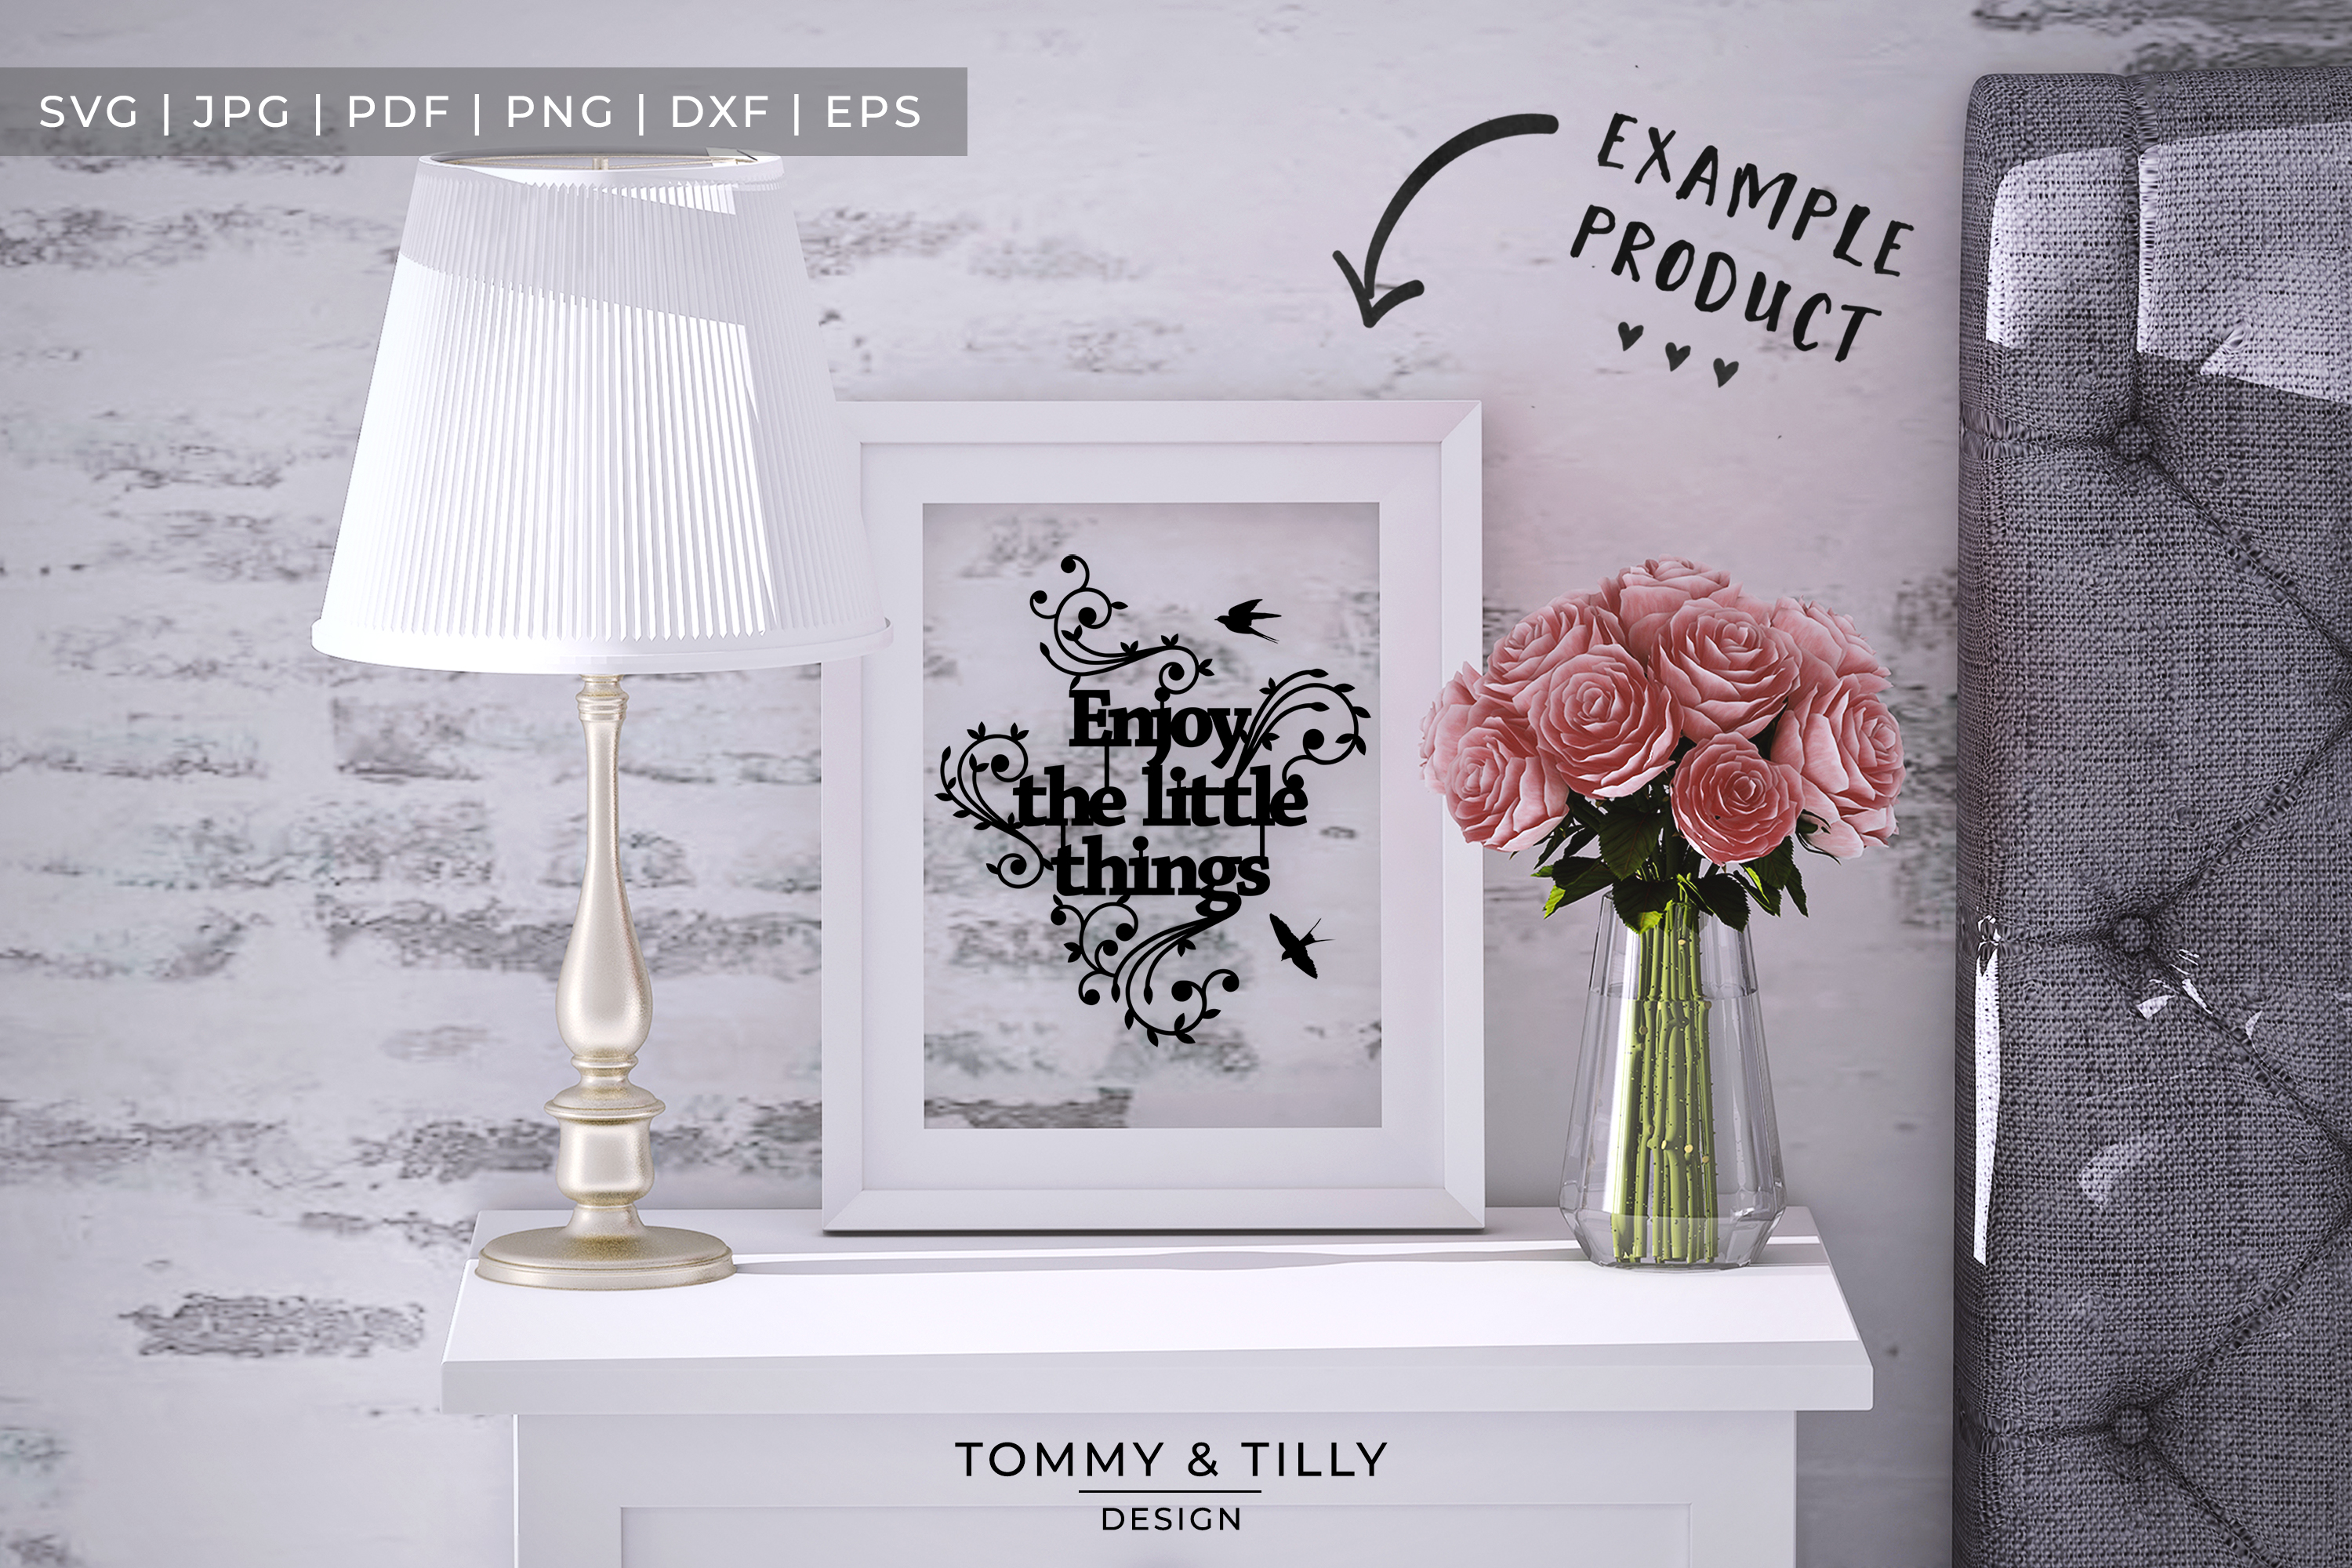 Enjoy the little things - Papercut SVG EPS DXF PNG PDF example image 3